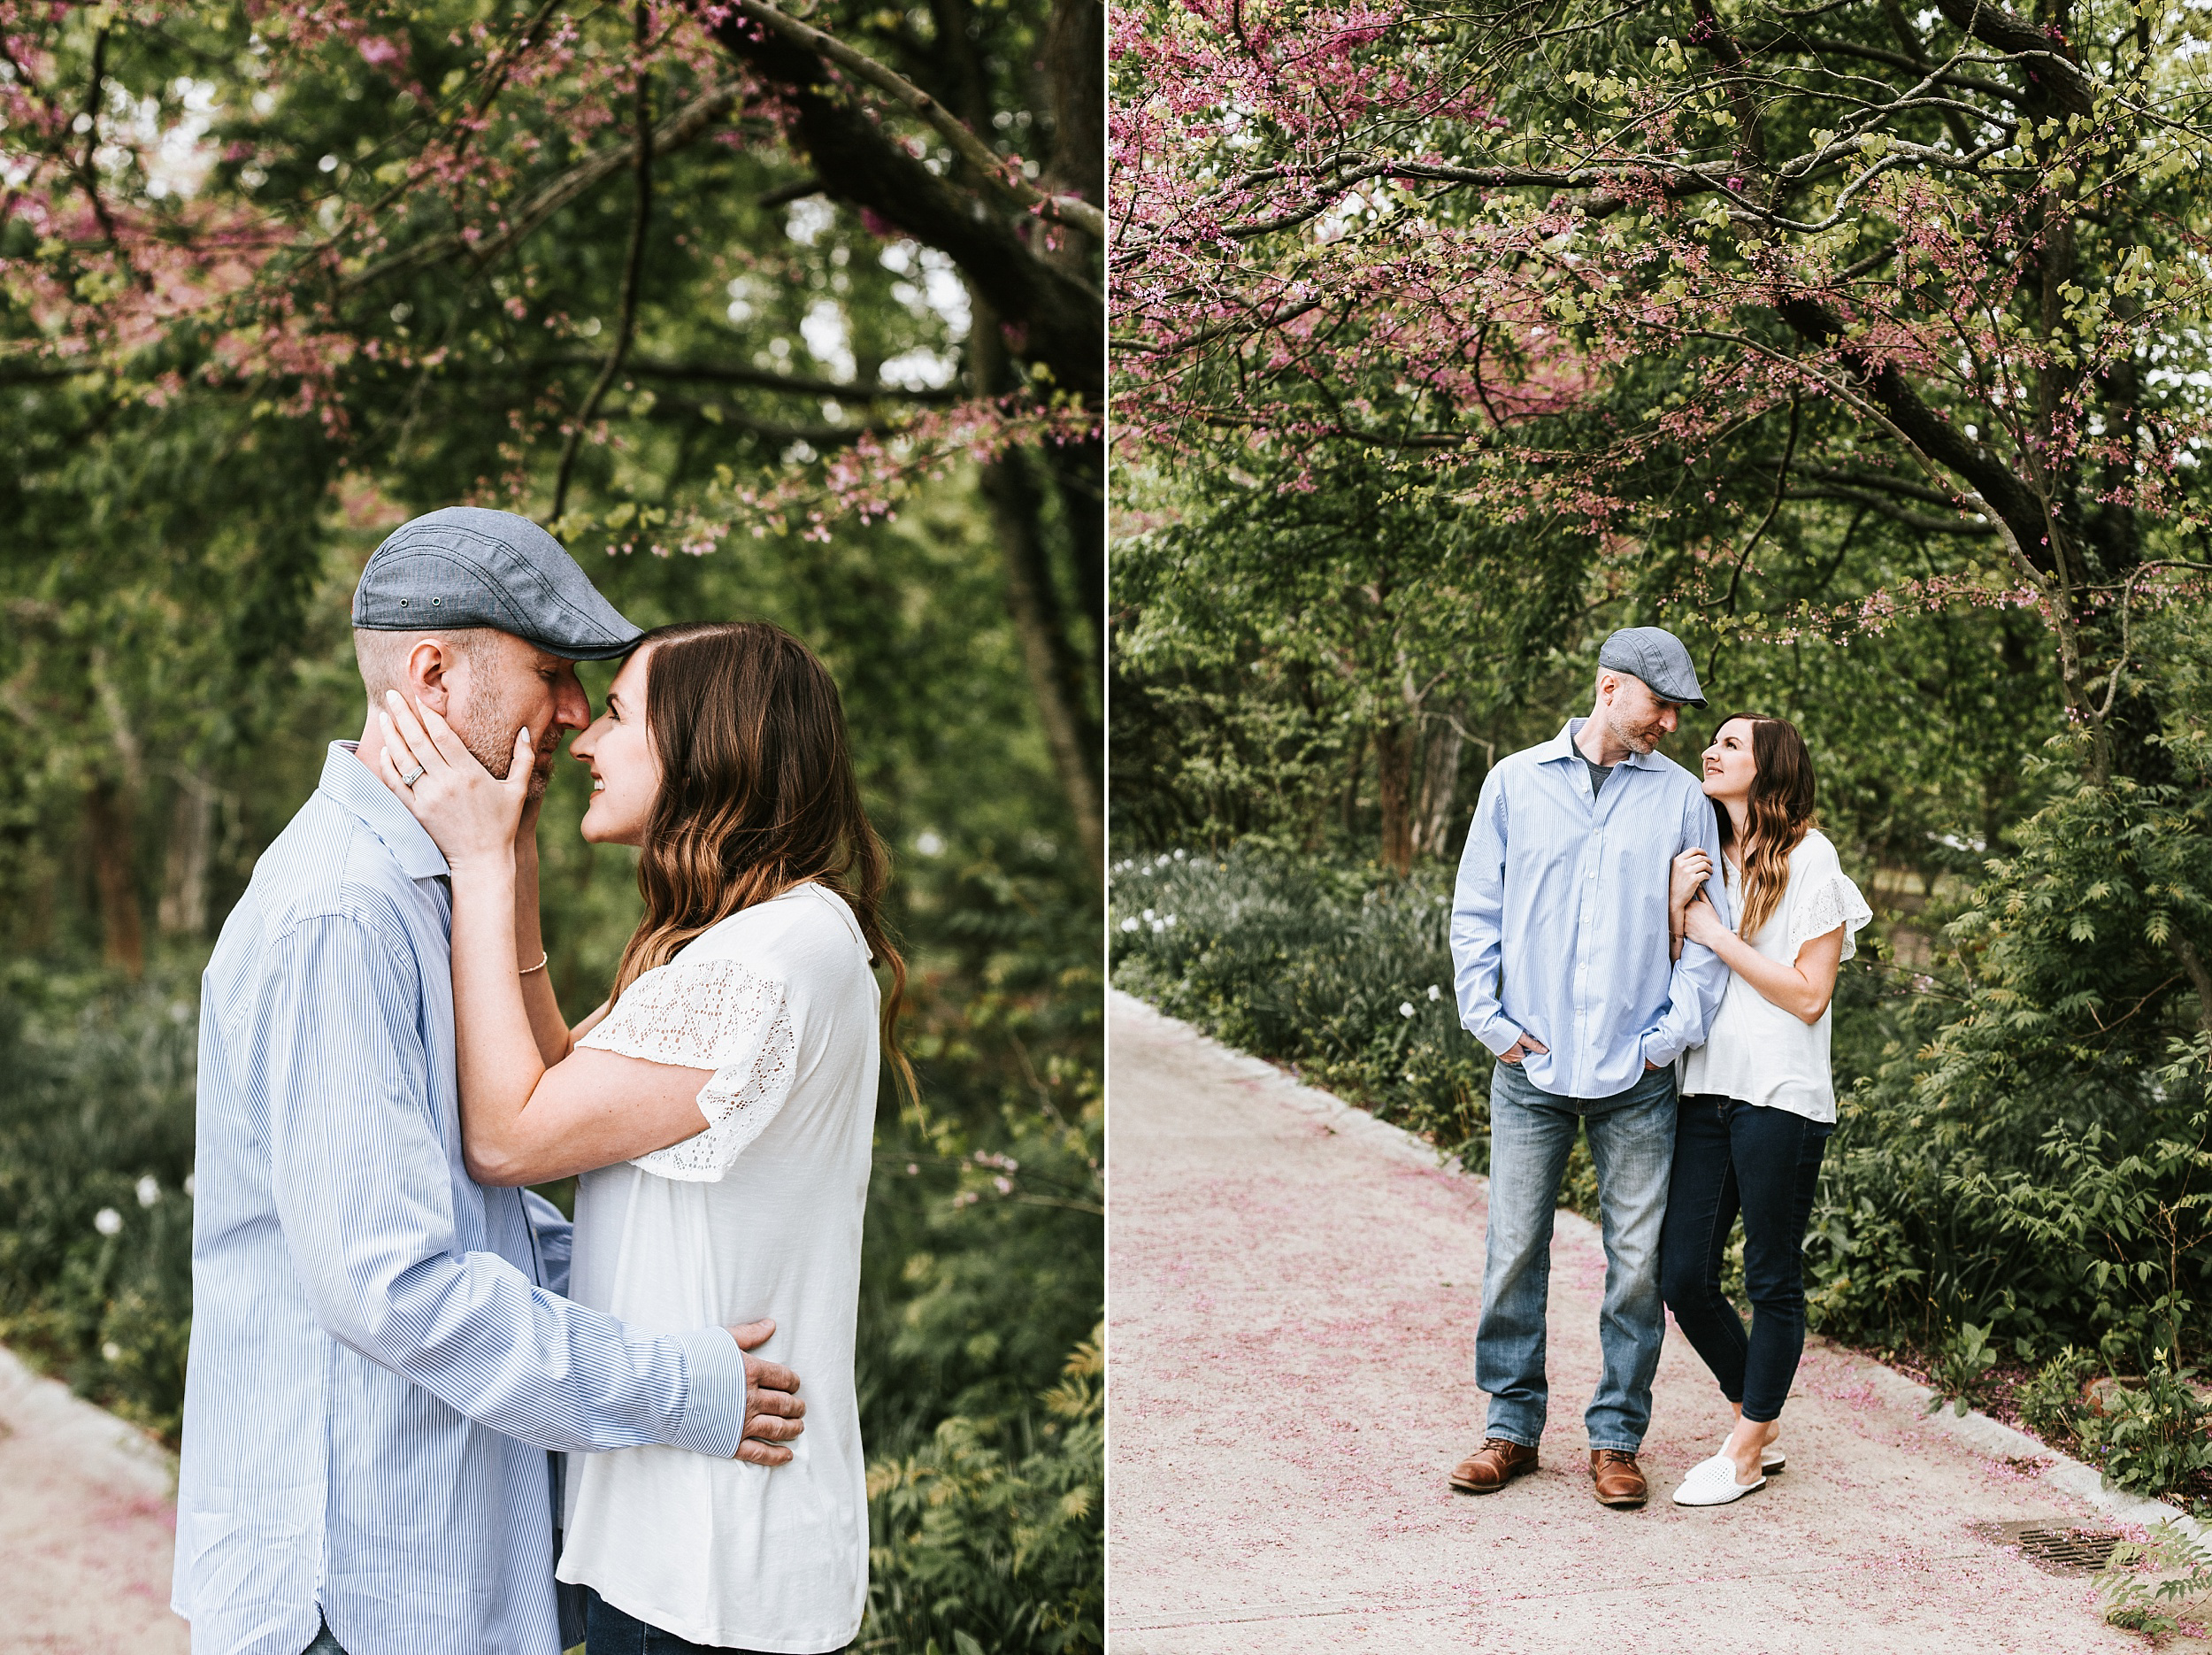 Brooke Townsend Photography - Cincinnati Lifestyle Photographer (8 of 13).jpg